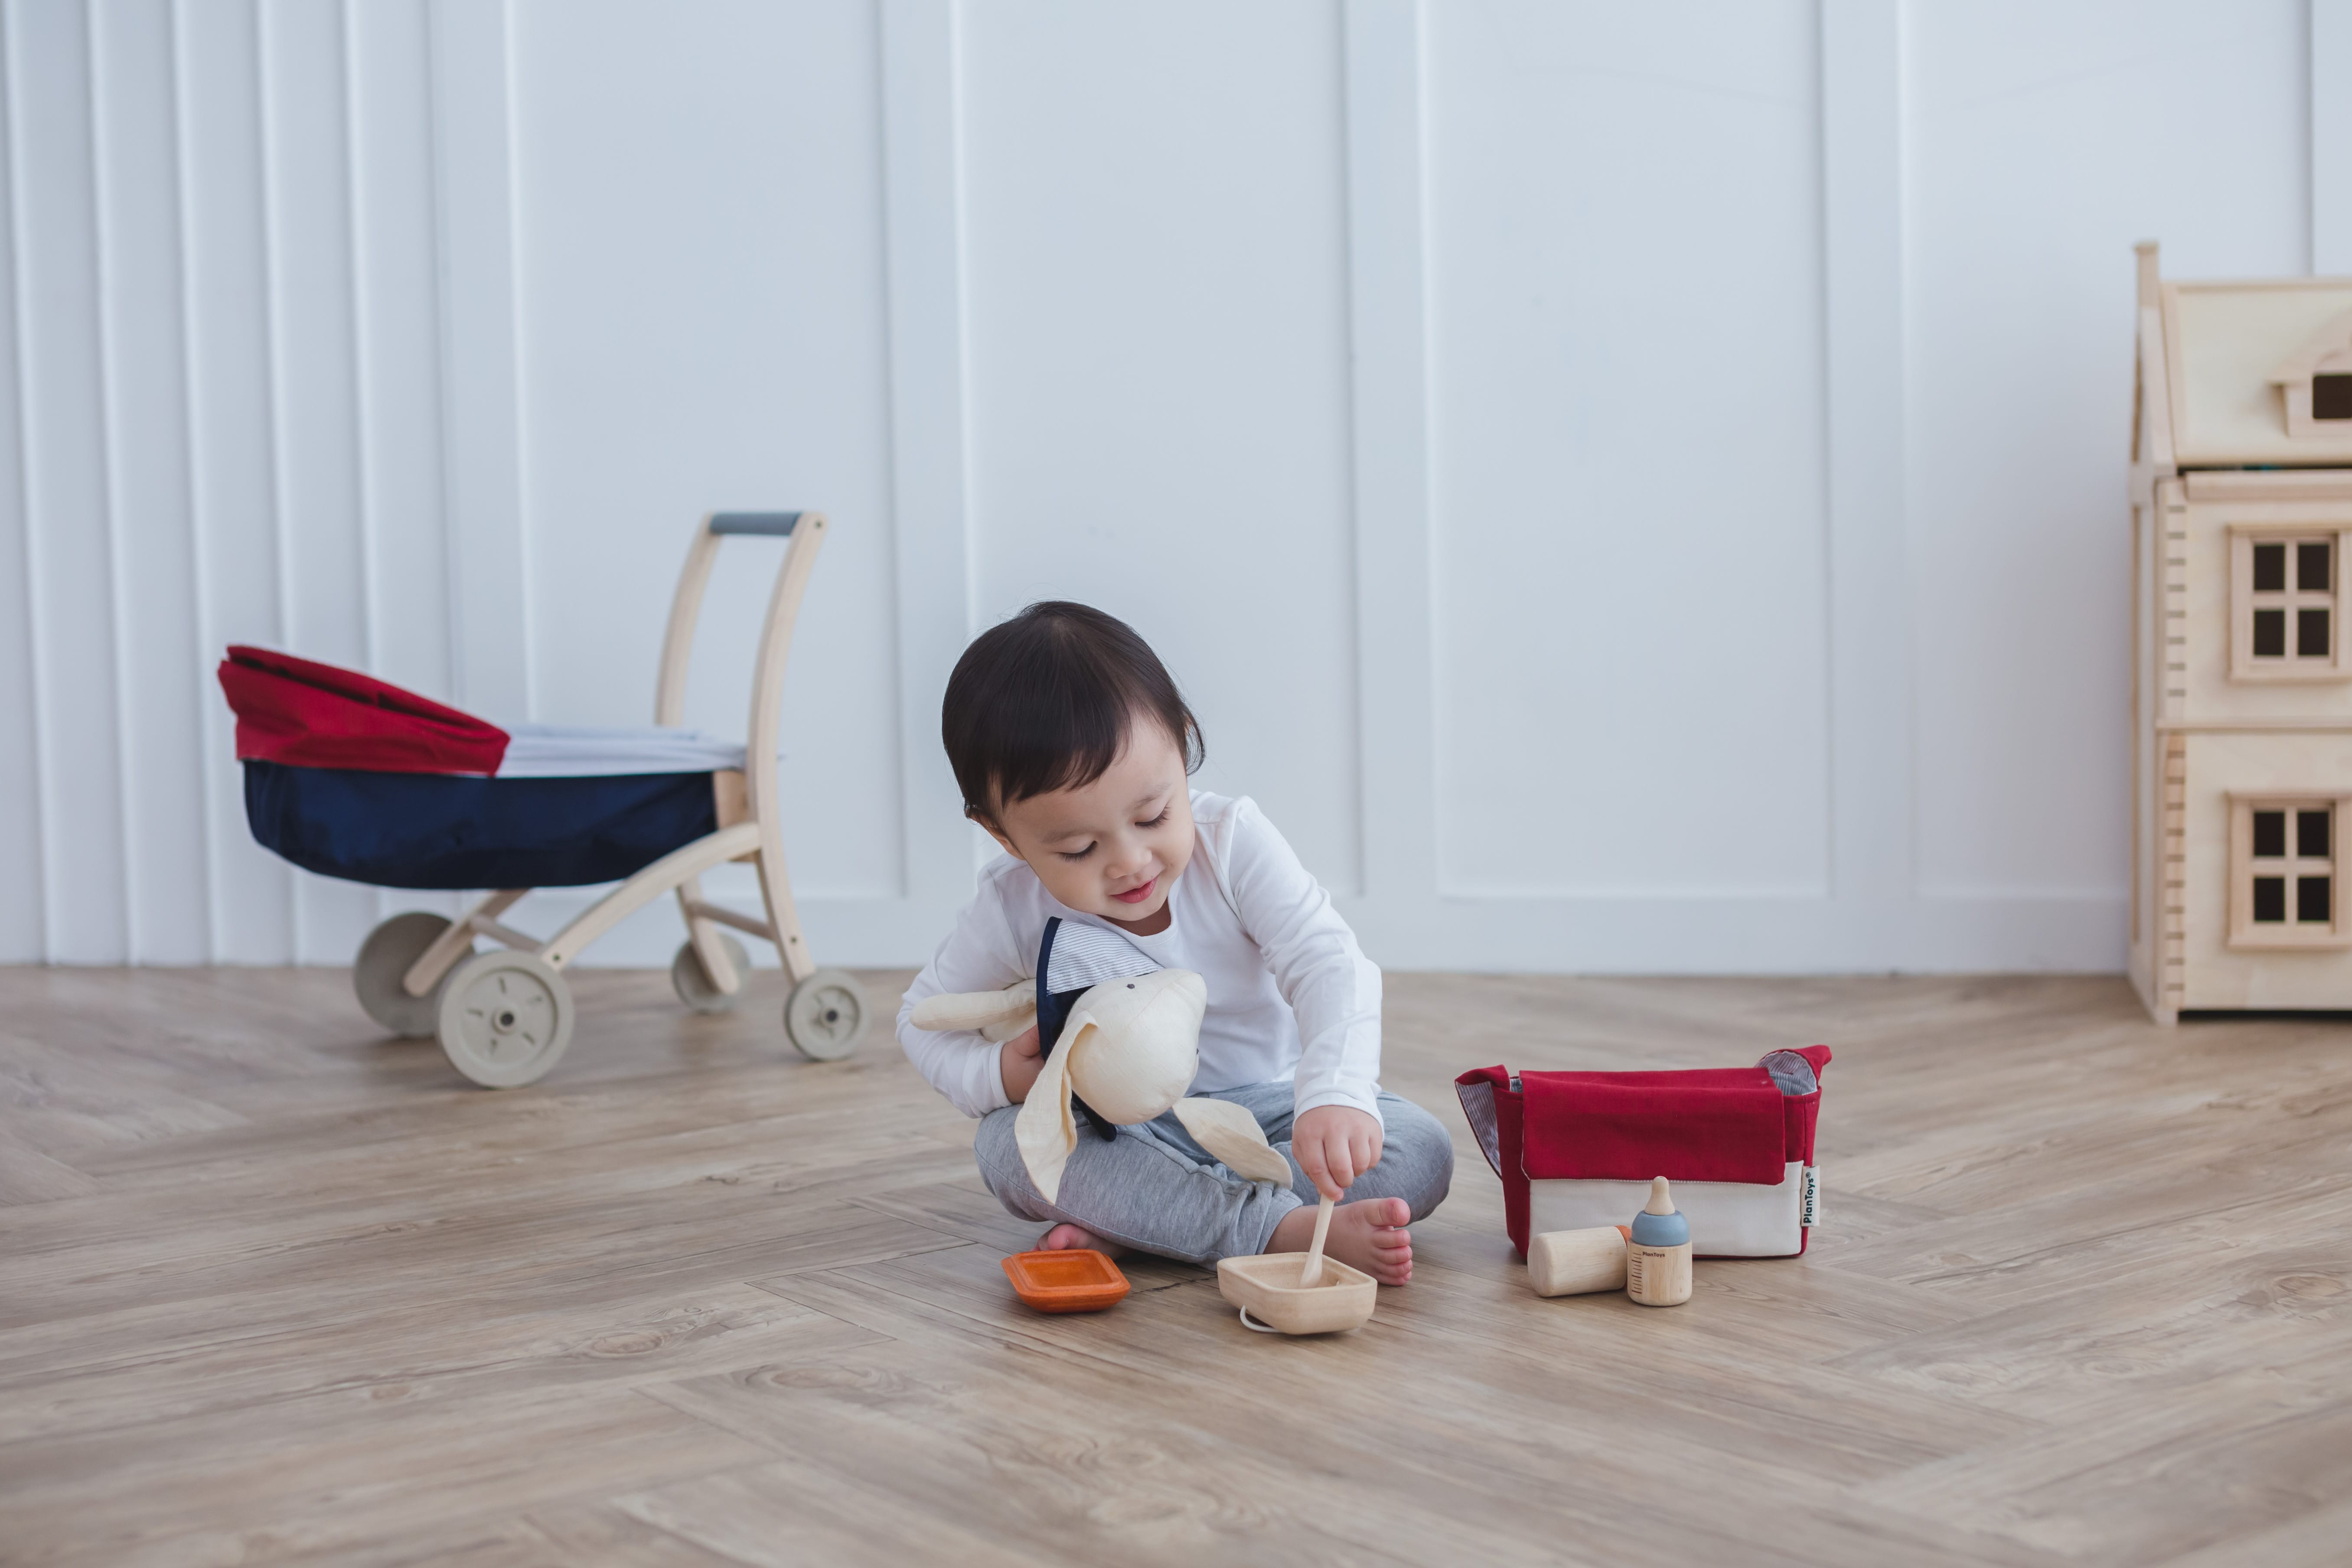 3499_PlanToys_BABY_FEEDING_SET_Pretend_Play_Imagination_Coordination_Language_and_Communications_Social_Fine_Motor_2yrs_Wooden_toys_Education_toys_Safety_Toys_Non-toxic_4.jpg